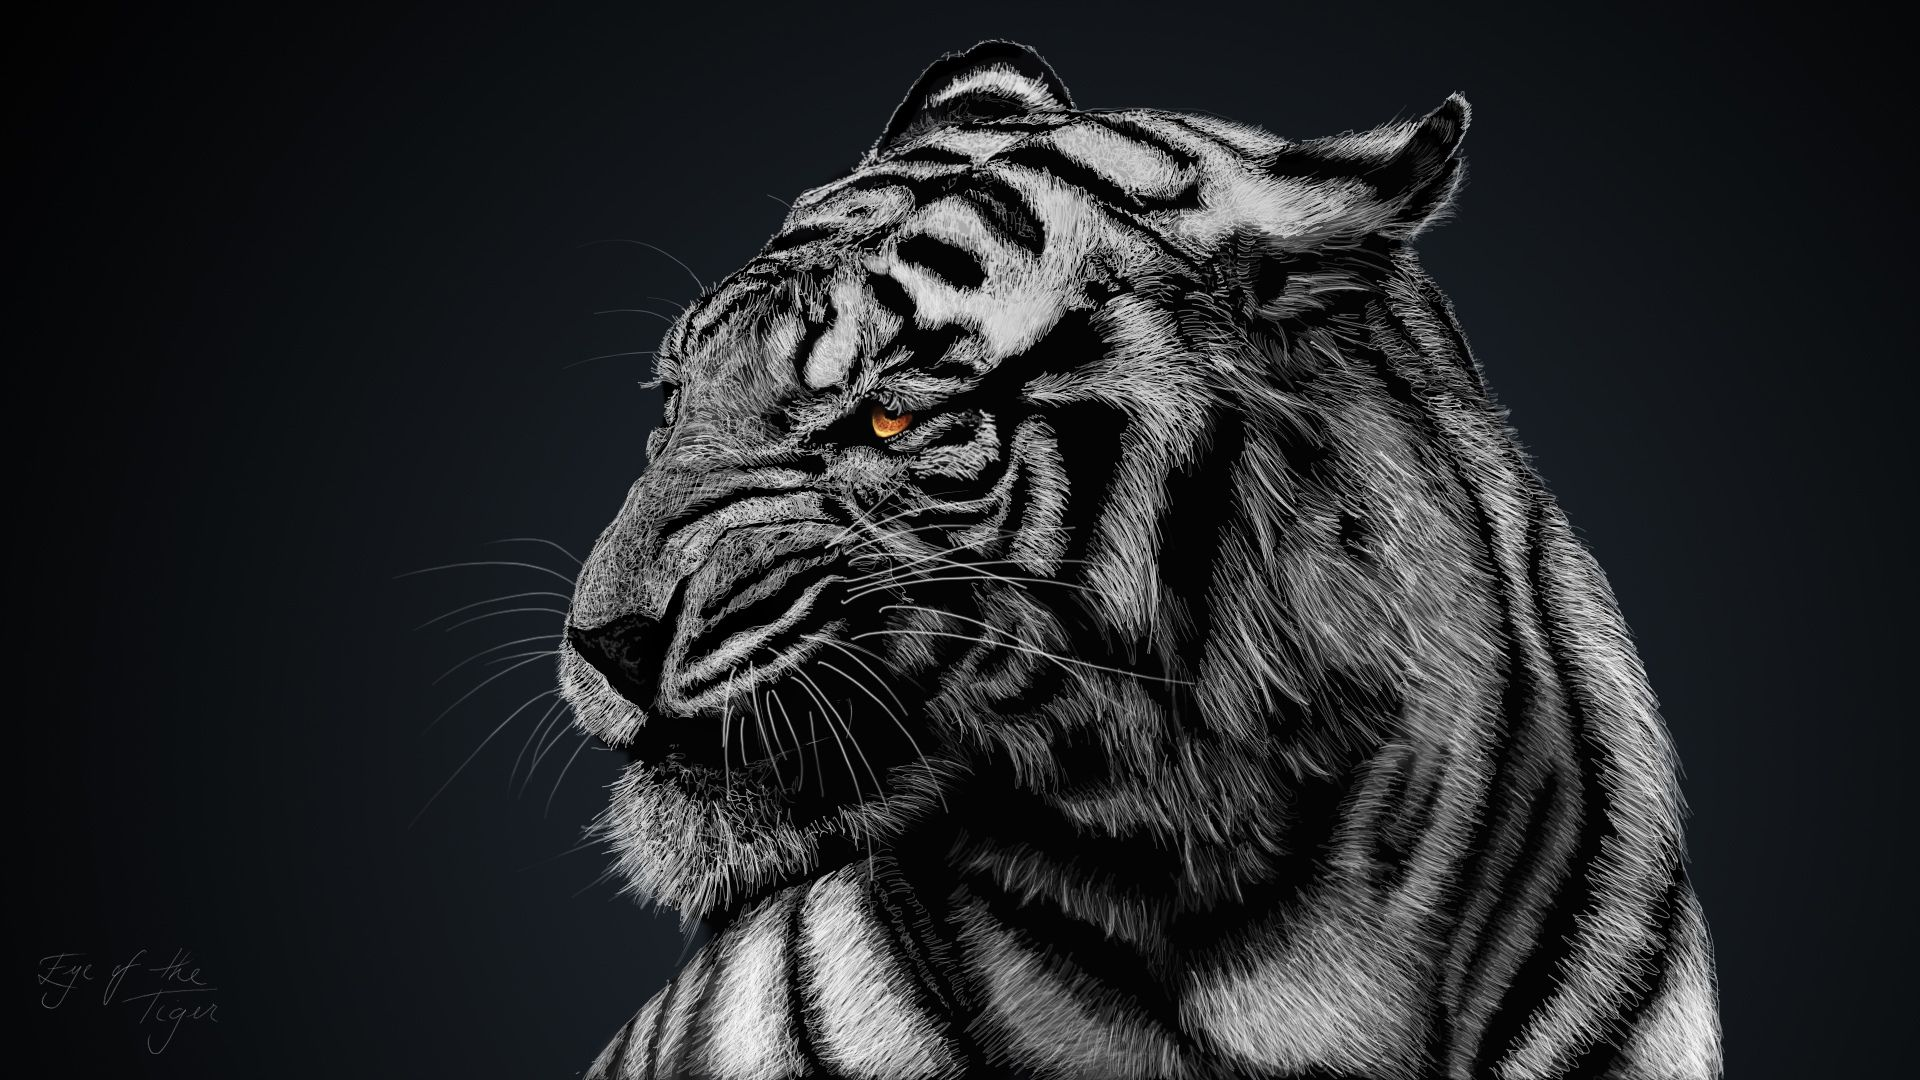 White Tiger Wallpapers Get Free Top Quality White Tiger Wallpapers For Your Desktop Pc Background Ios Or Androi Tiger Wallpaper Tiger Artwork Tiger Pictures